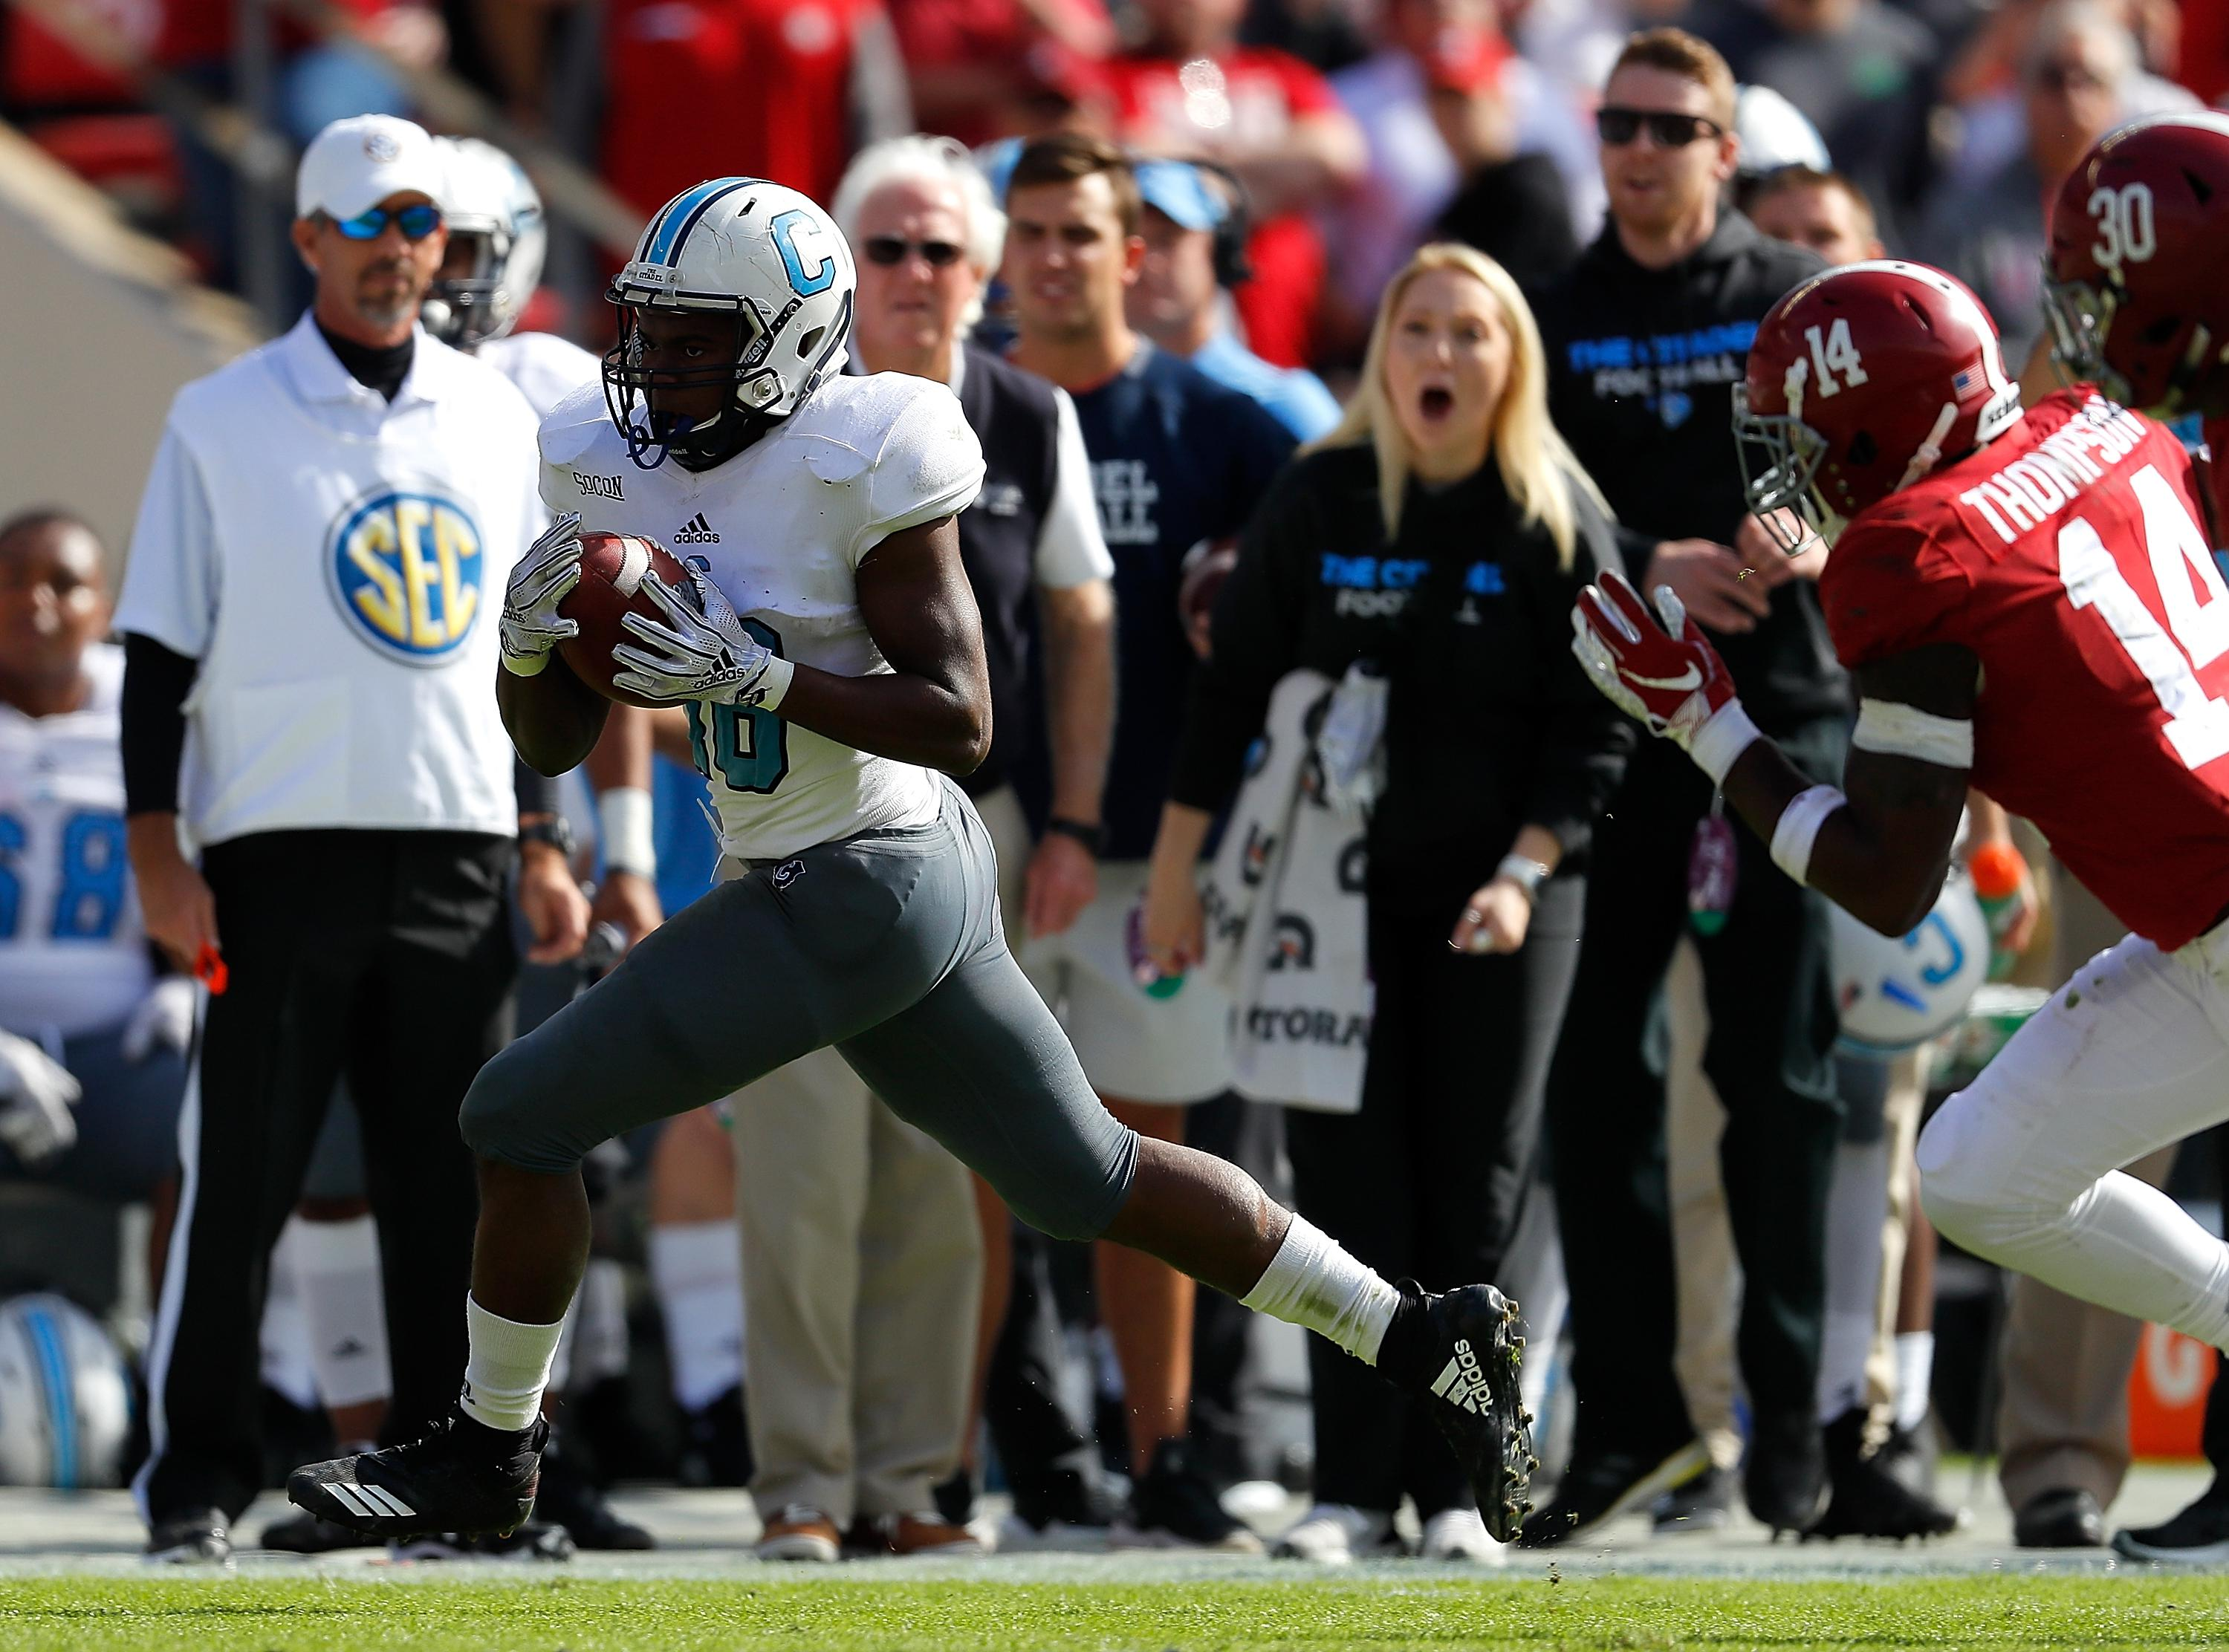 TUSCALOOSA, AL - NOVEMBER 17:  Dante Smith #18 of the Citadel Bulldogs rushes for a touchdown against the Alabama Crimson Tide at Bryant-Denny Stadium on November 17, 2018 in Tuscaloosa, Alabama.  (Photo by Kevin C. Cox/Getty Images)